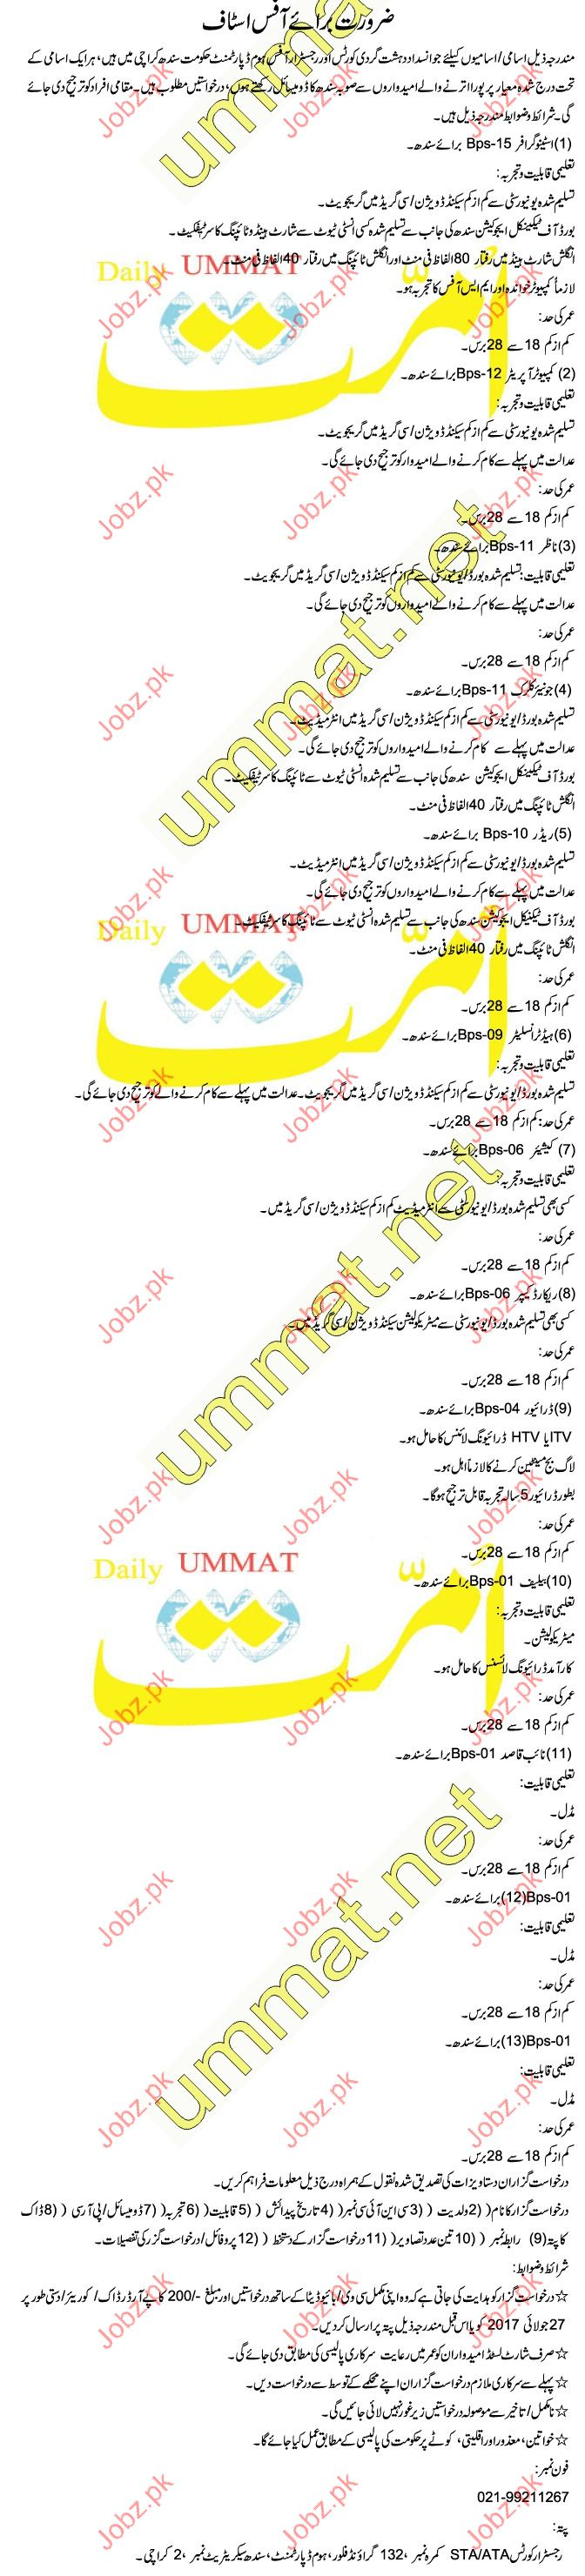 Clerical Jobs In Counter Terrorism  Department